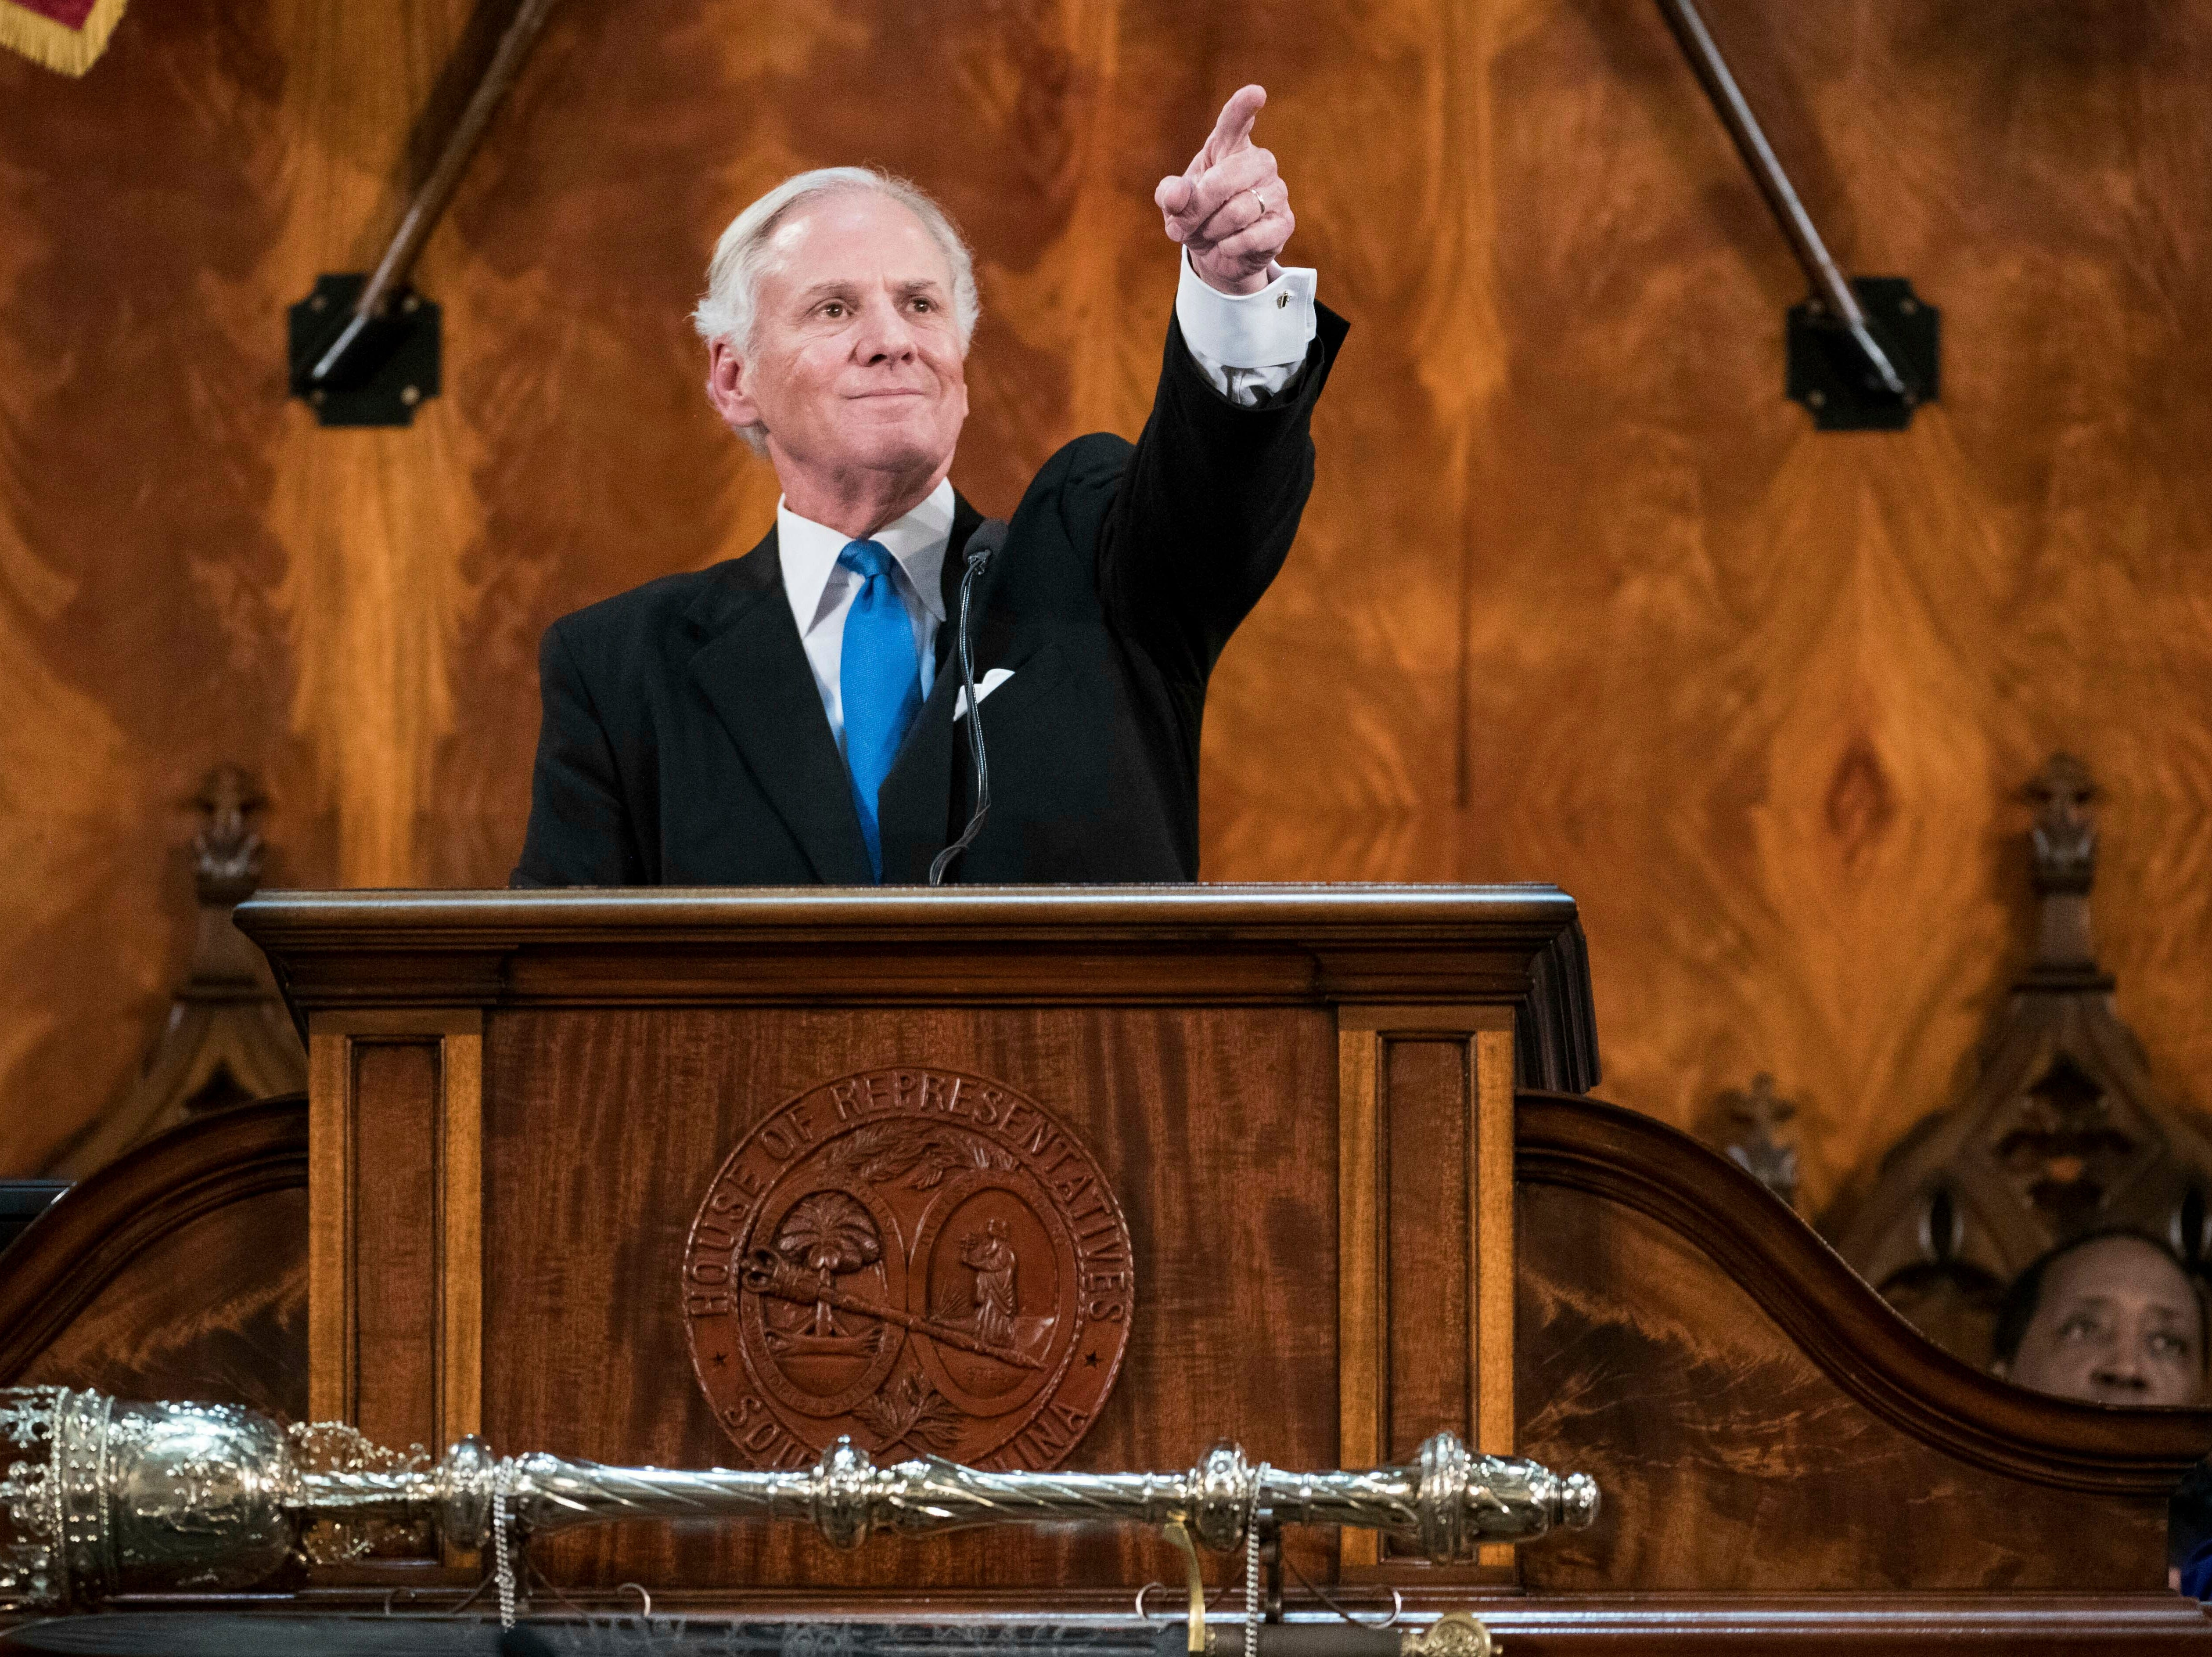 South Carolina Governor Henry McMaster delivers the State of the State address at the South Carolina Statehouse, Wednesday, Jan. 23, 2019, in Columbia, S.C. (AP Photo/Sean Rayford)